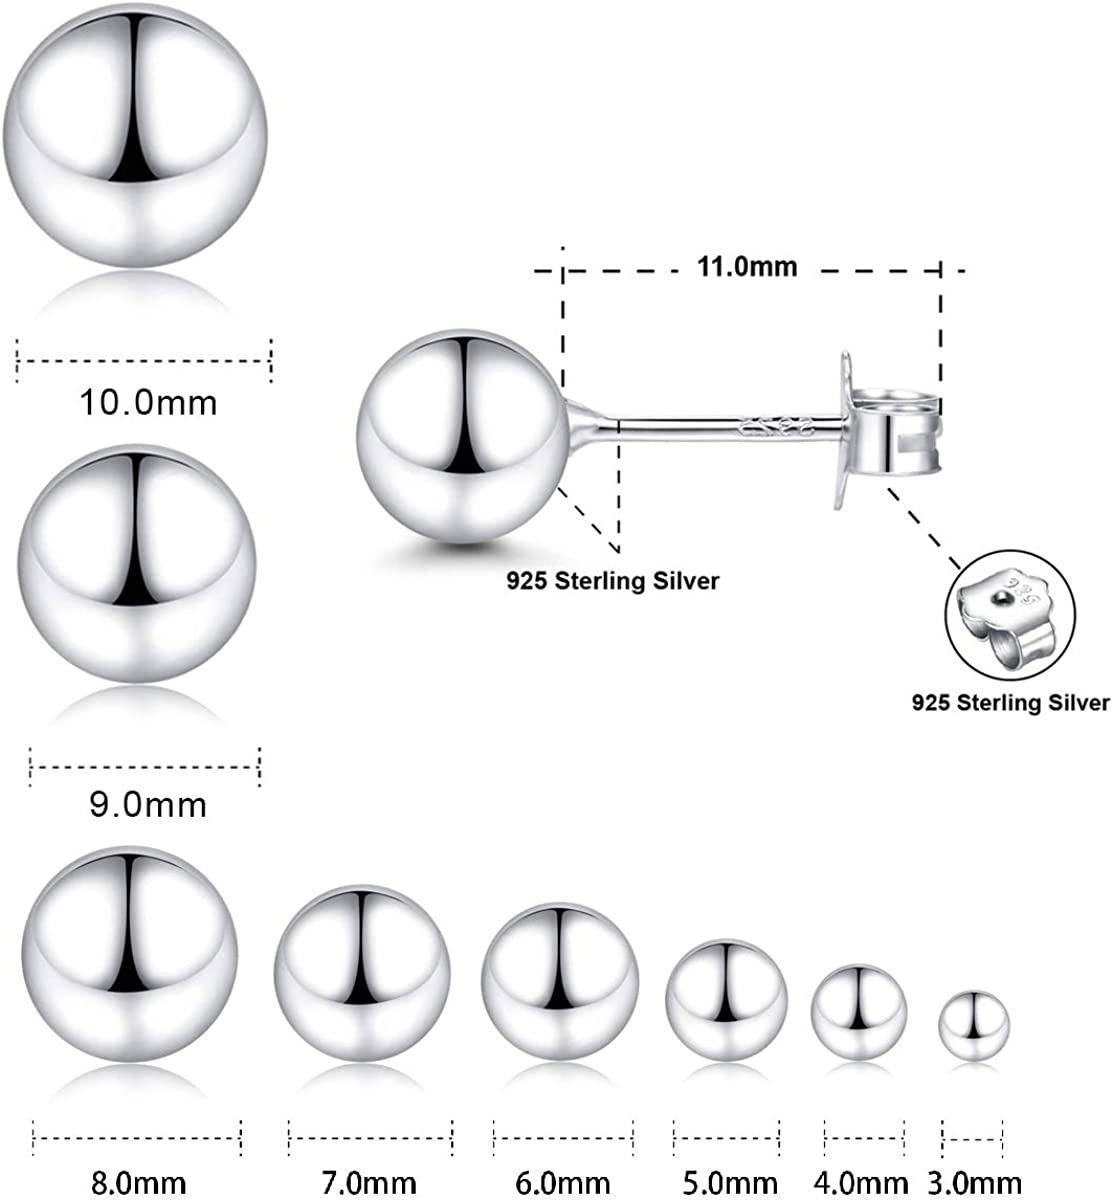 Simple Polished Ball Studs Hypoallergenic Jewelry White Gold Sterling Silver Ball Stud Earrings 3mm-10mm Options